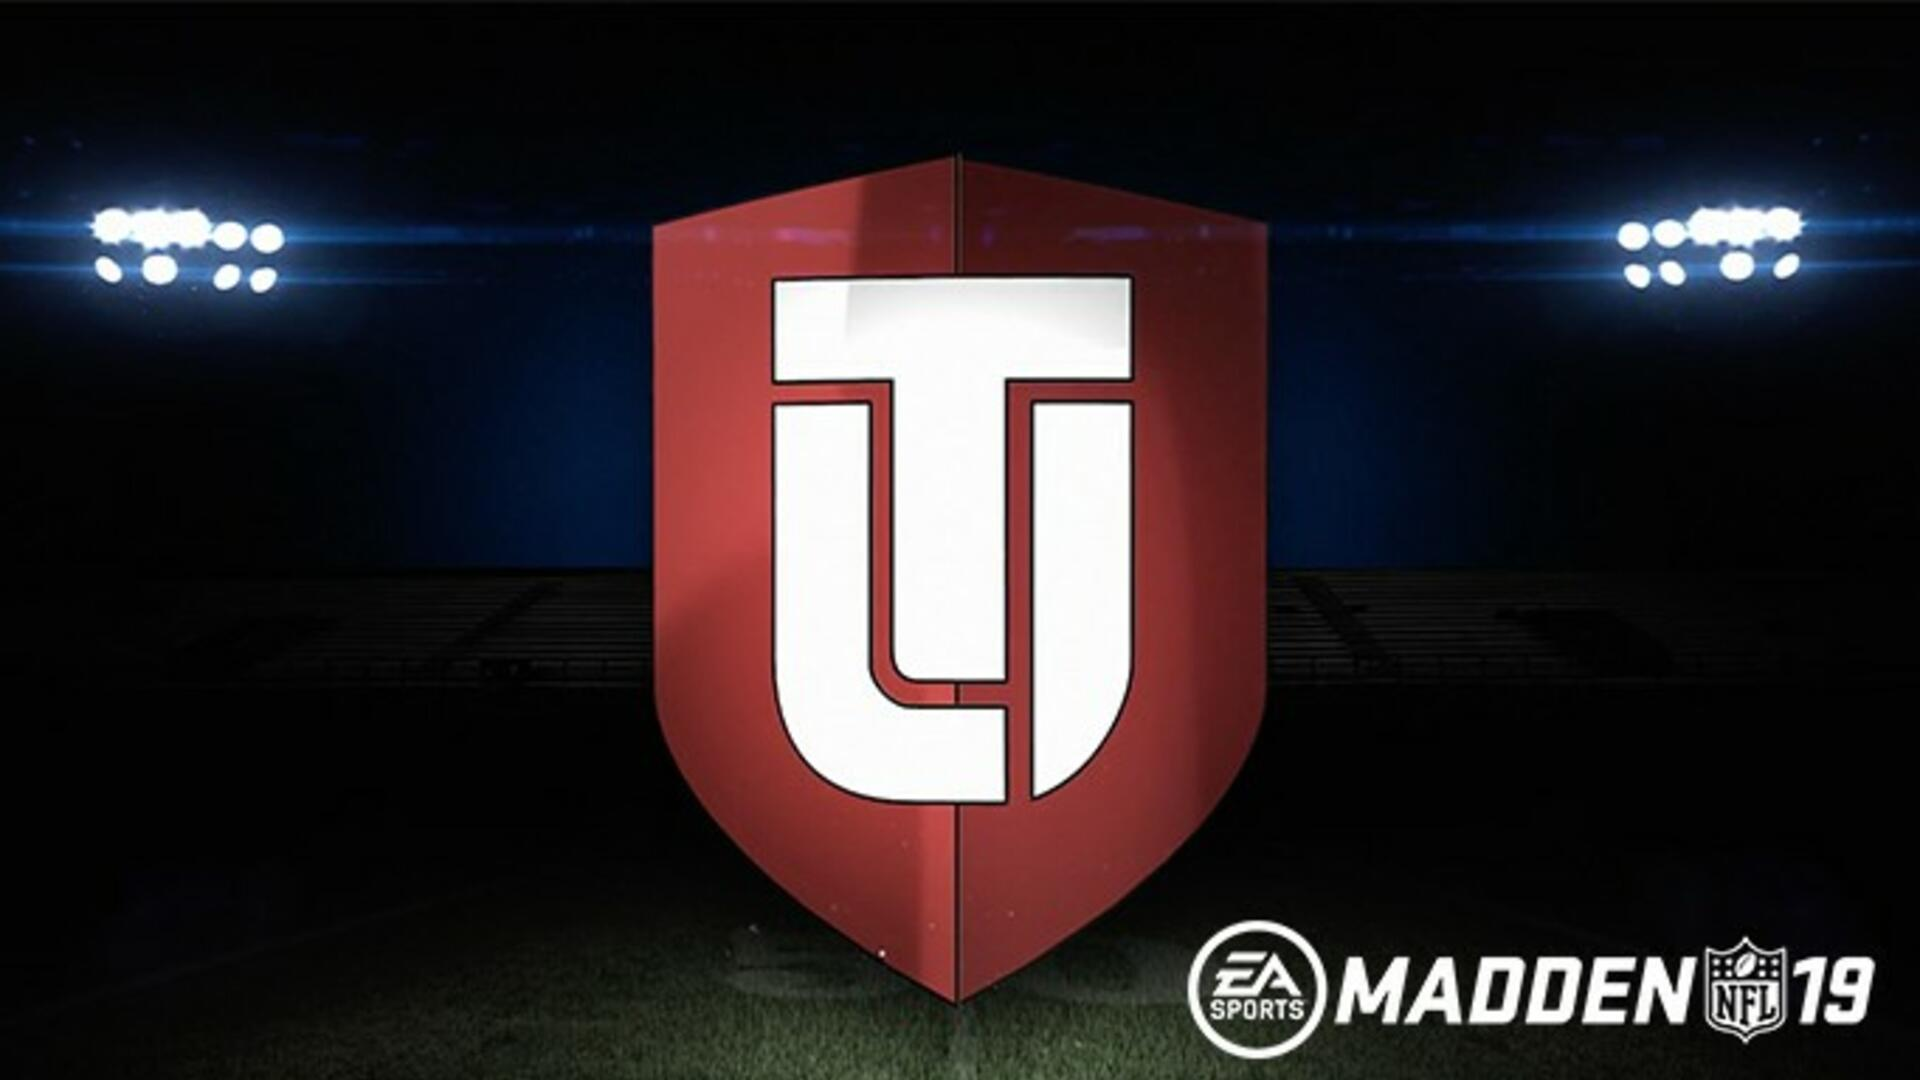 Madden 19 MUT Training - How to Earn MUT Training Quickly, How to Upgrade Players